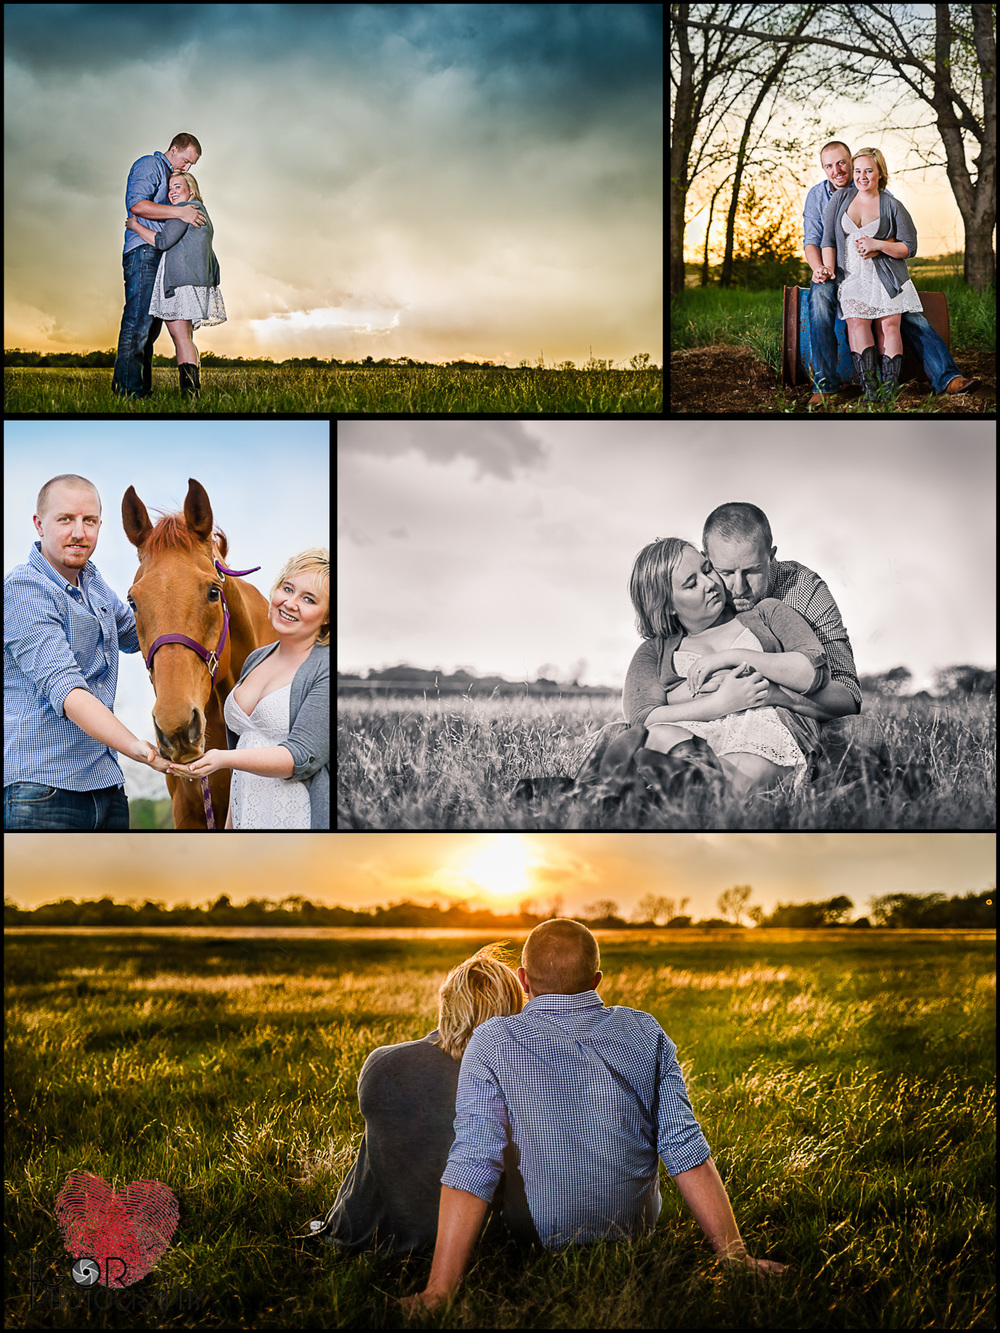 Sunset engagement photography in Burleson, Texas